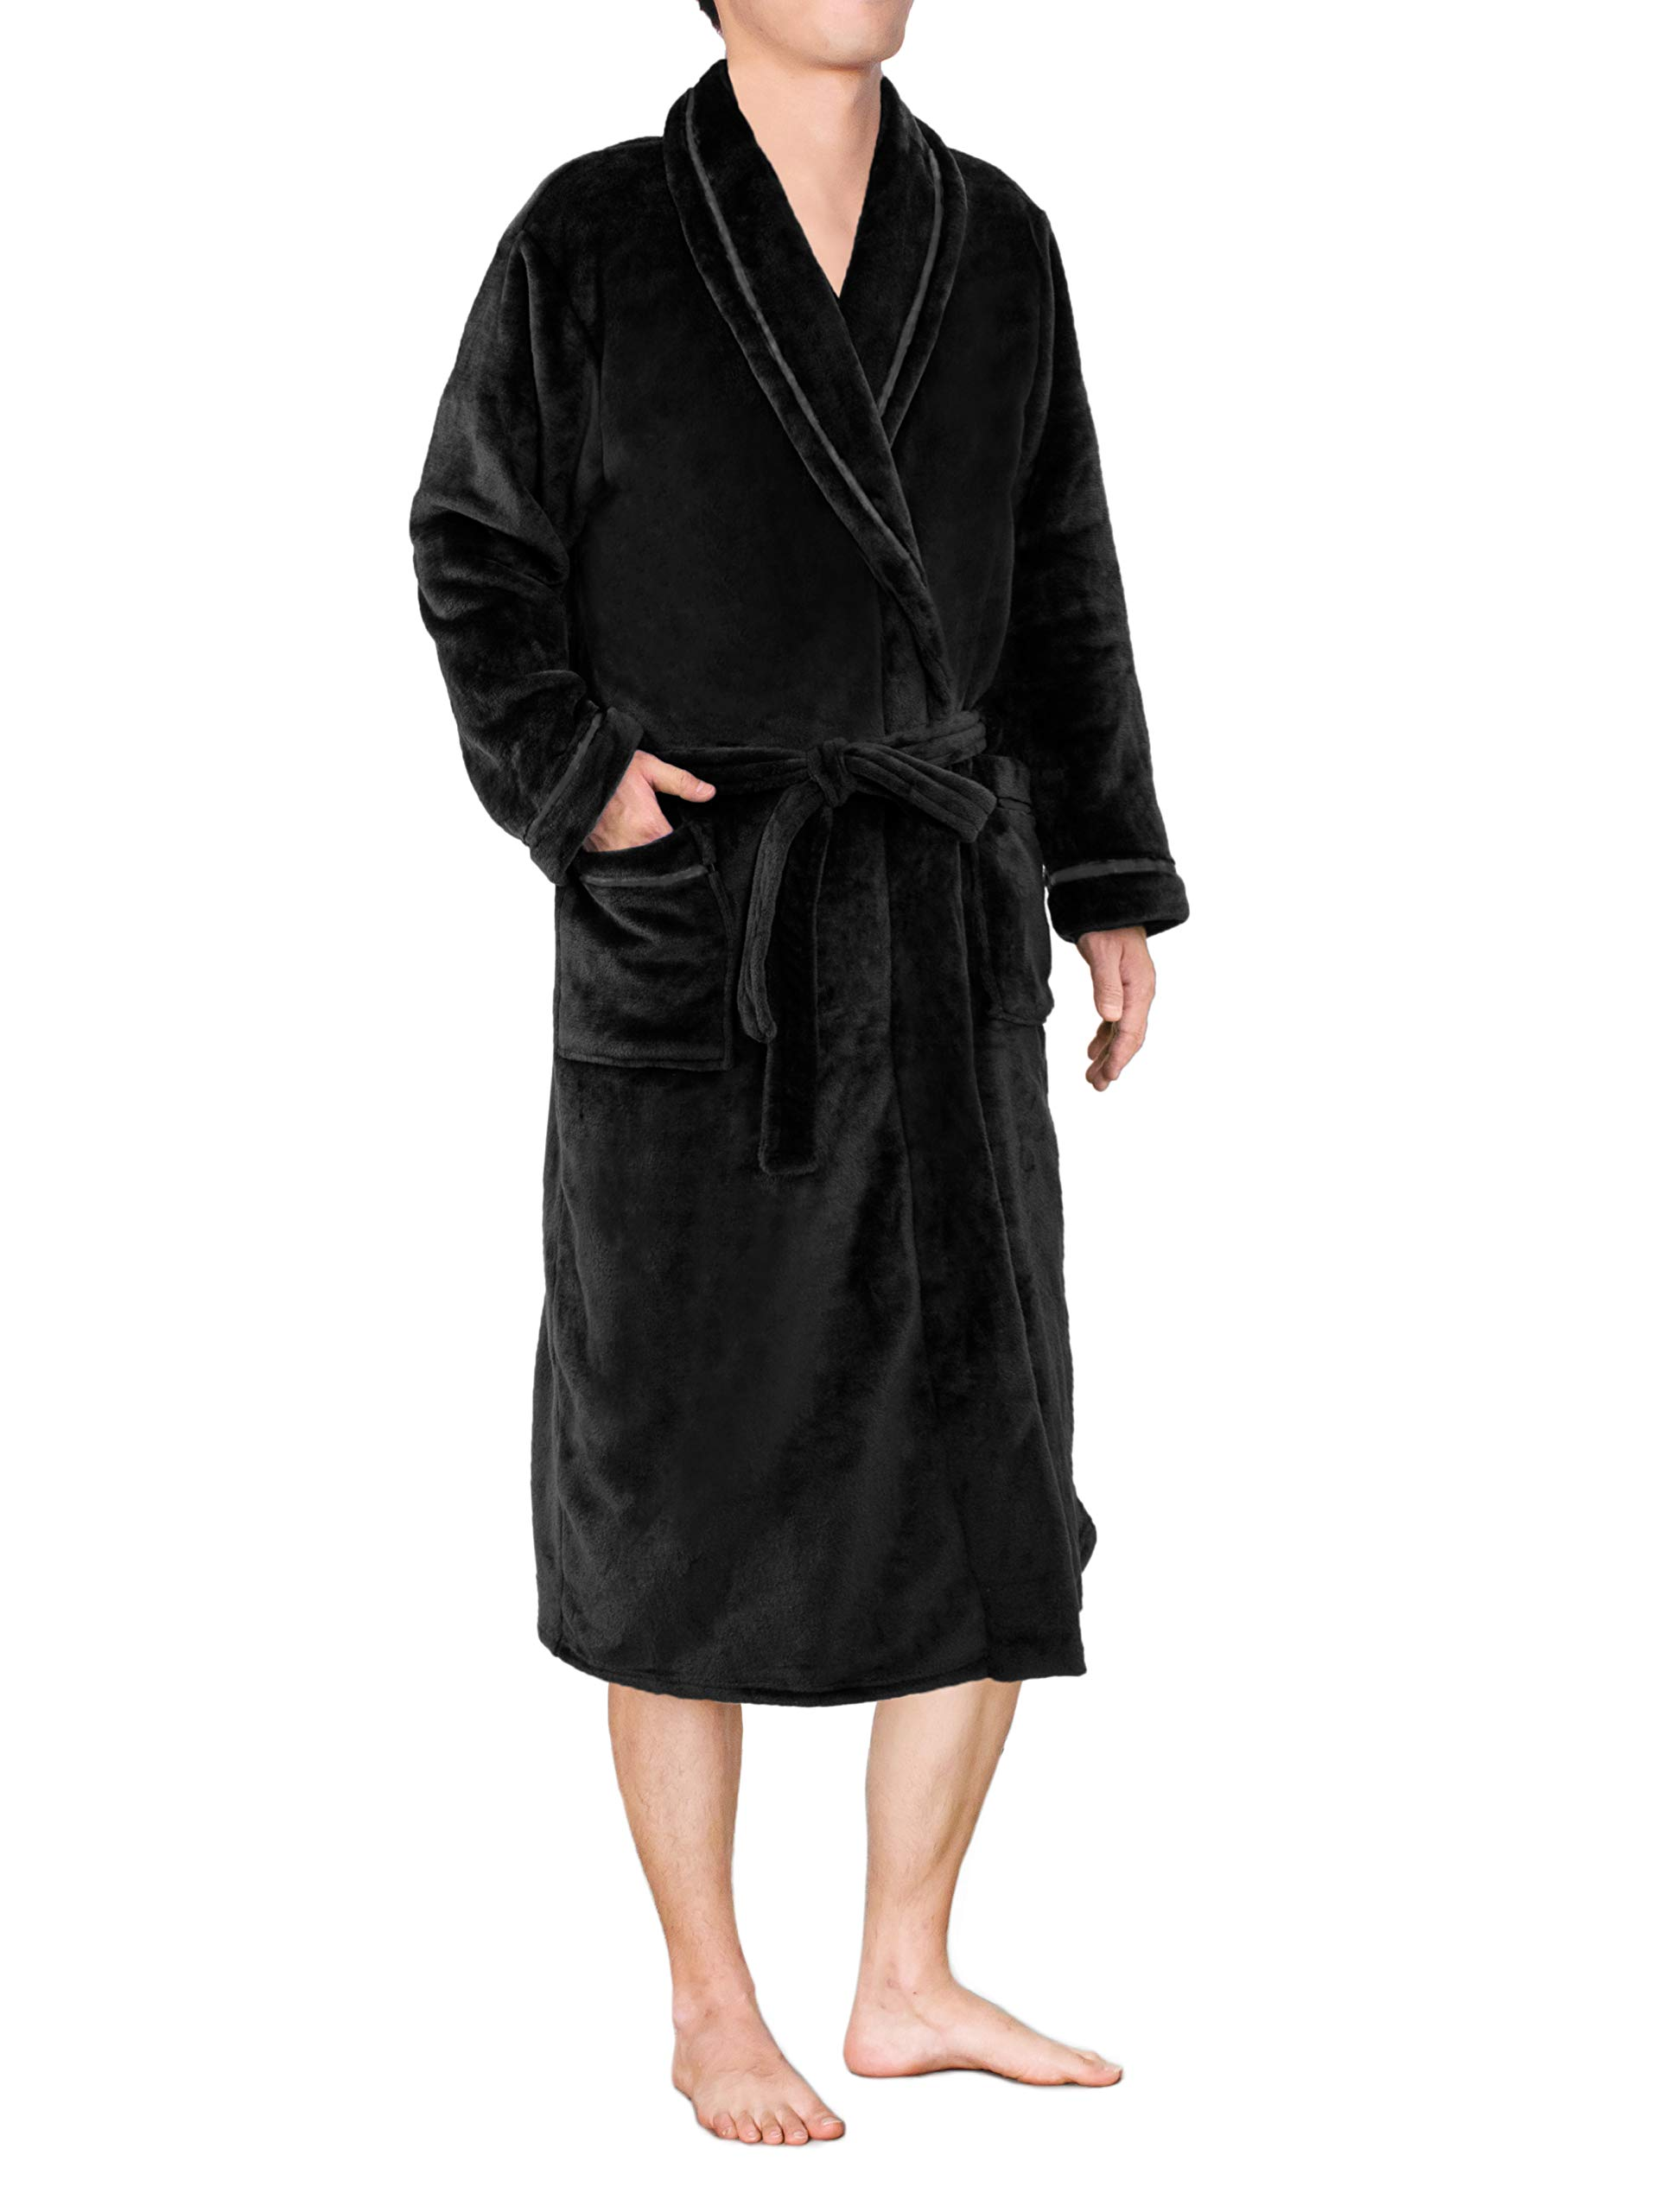 Mens Plush Fleece Robe with Satin Trim | Soft, Warm, Lightweight Spa Bath Robe Satin Black by PAVILIA